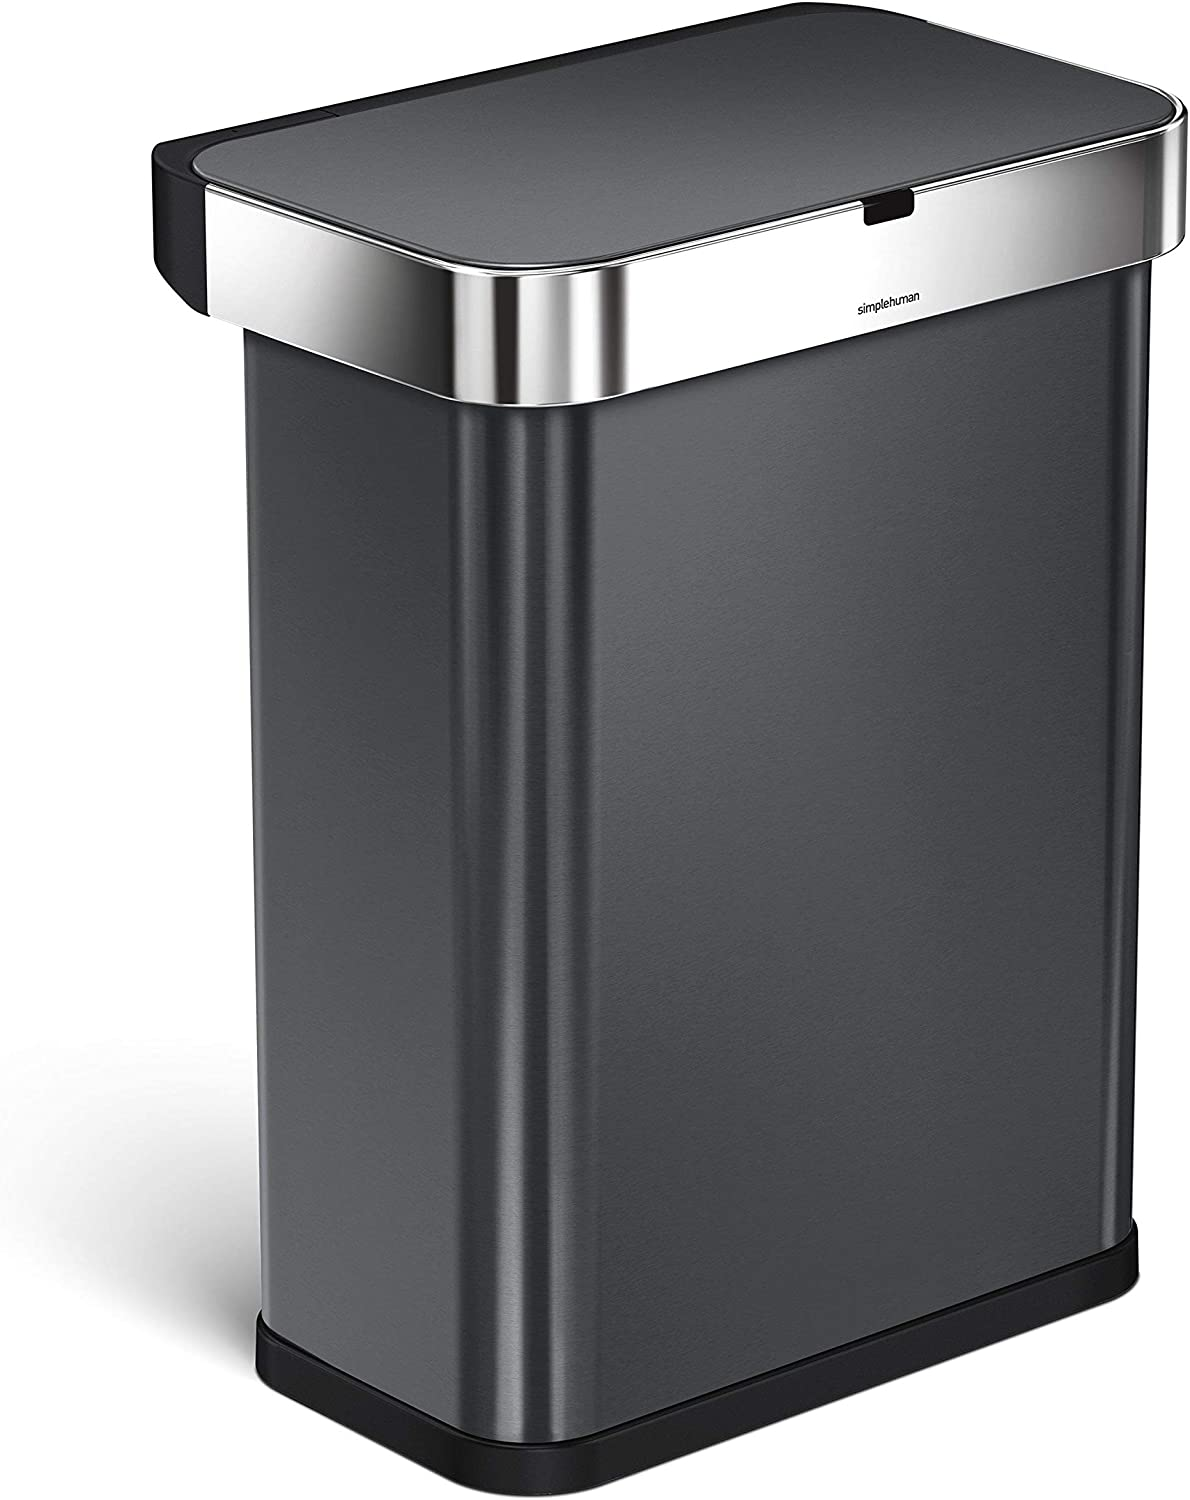 15.3 Gallon 58L Stainless Steel Touch-Free Rectangular Kitchen Sensor Trash Can with Voice and Motion Sensor simplehuman 58 Liter Voice Activated Black Stainless Steel